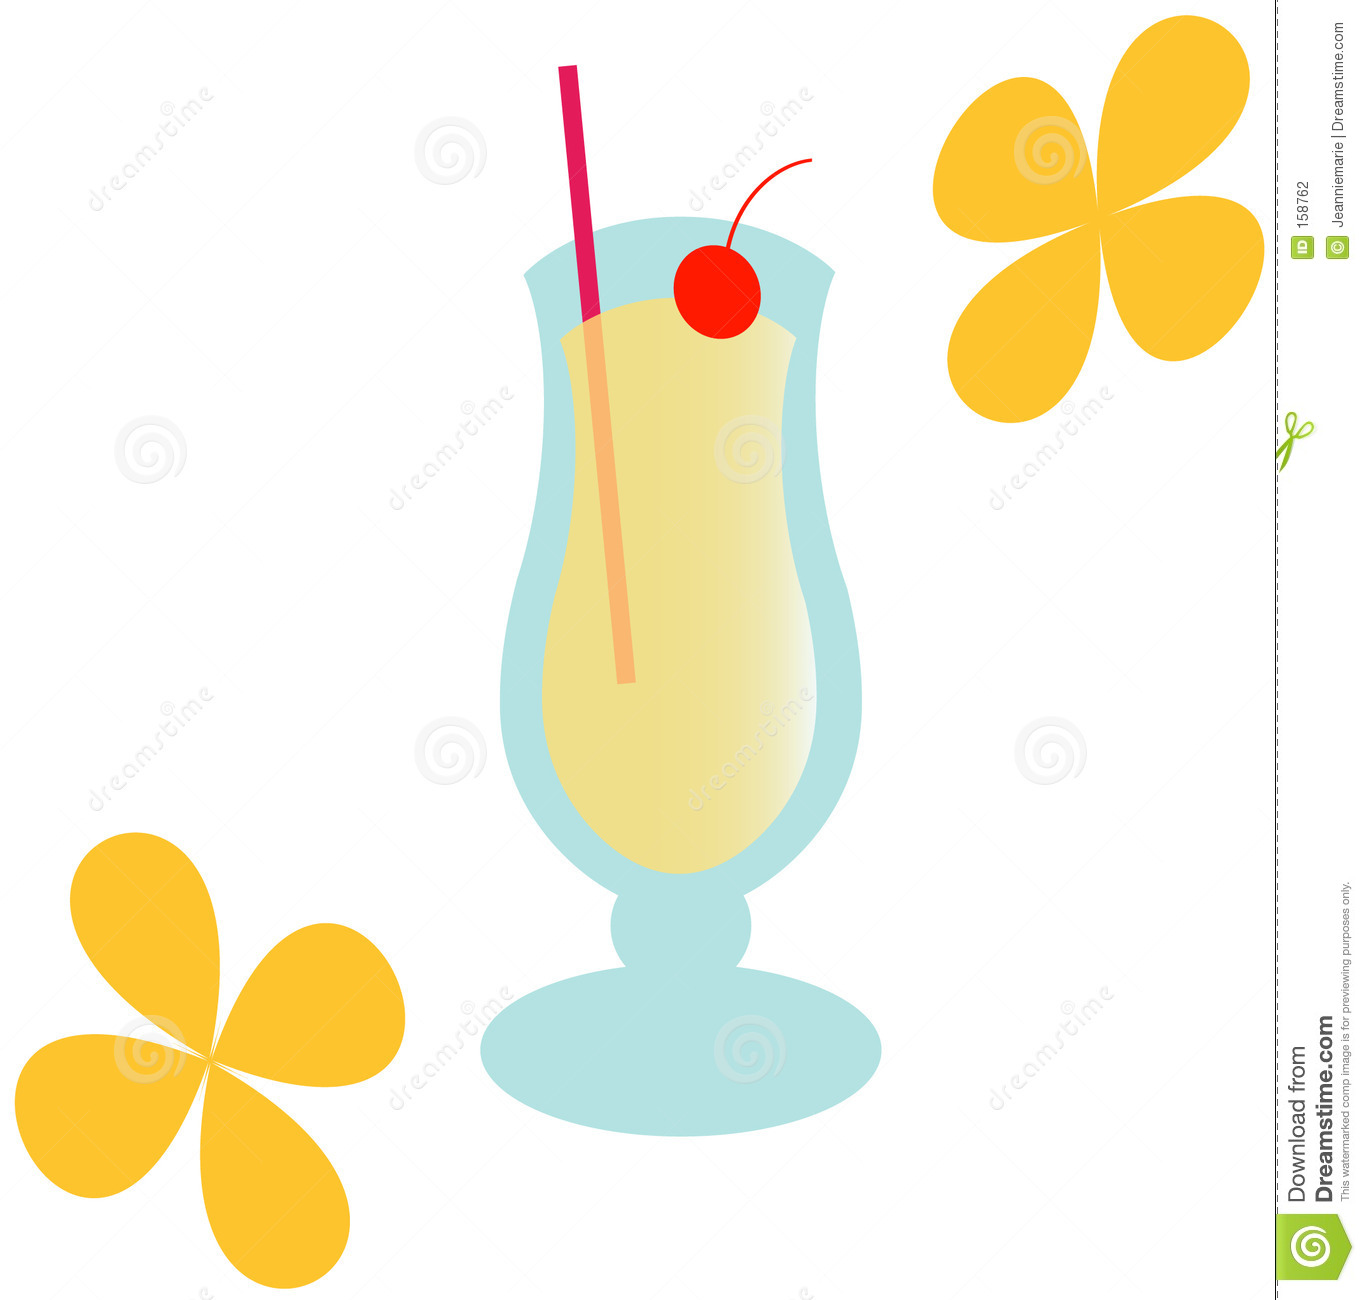 Groovy Pina Colada - Illustration